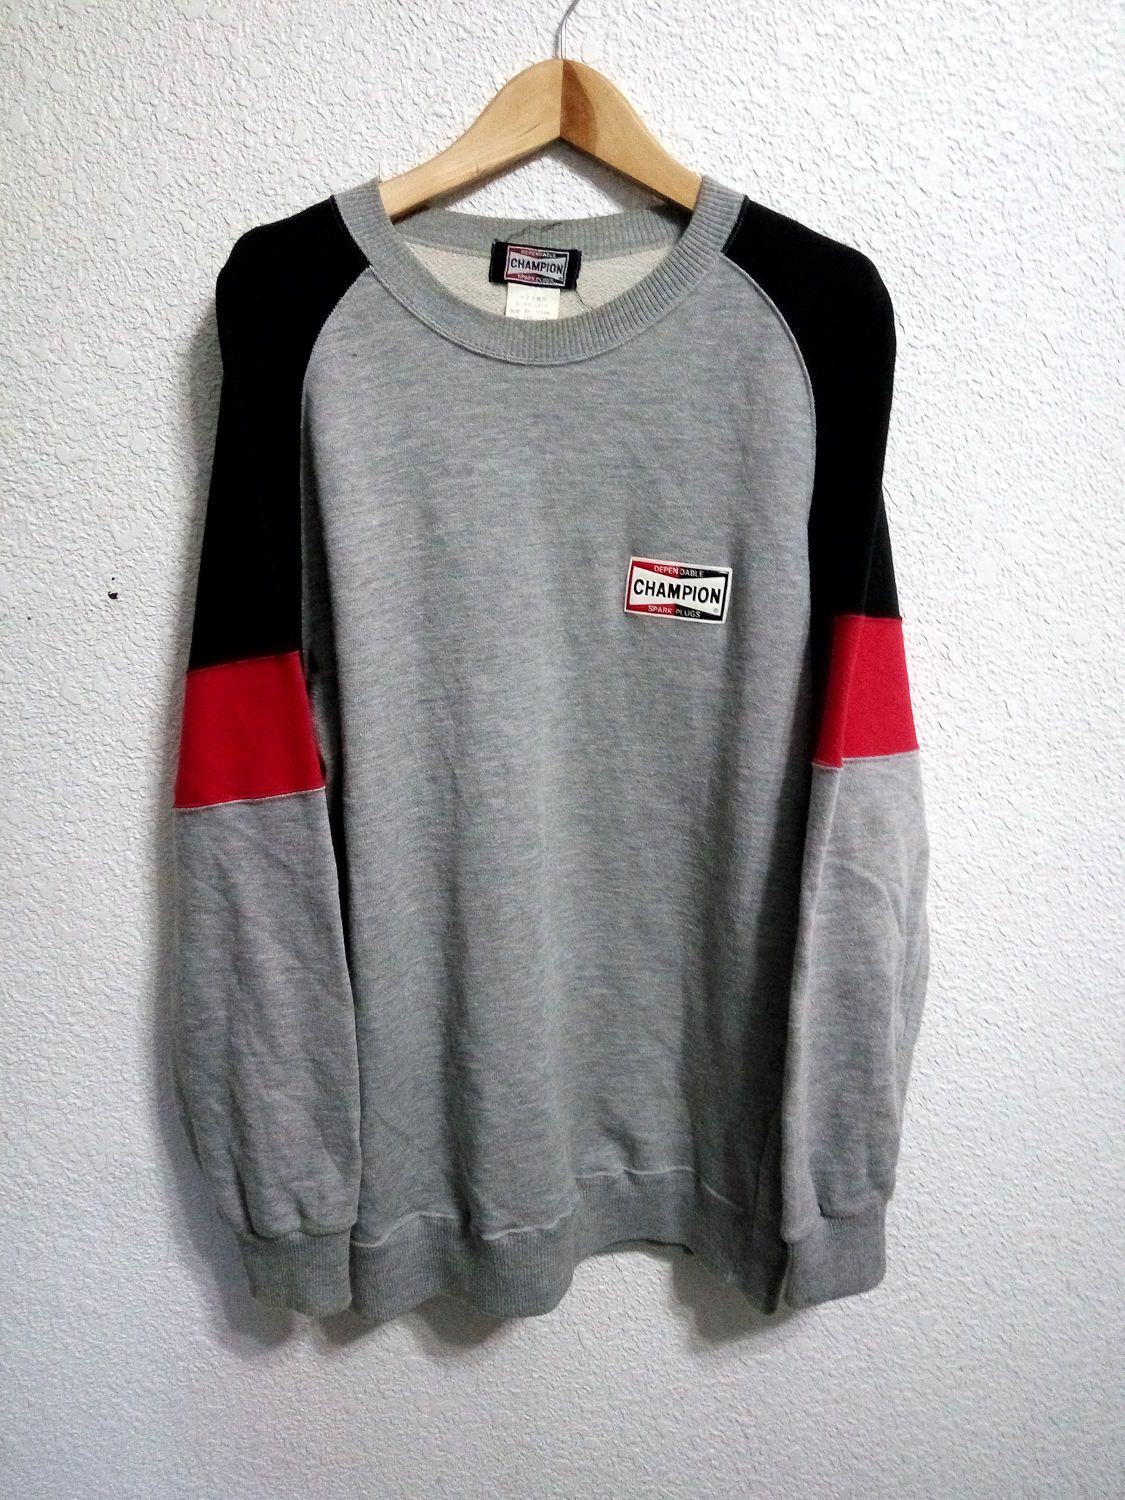 9005b91bf Sale Vintage Champion Spark Plug Sweatshirt Grey Colour by  GoShopVintageStore on Etsy